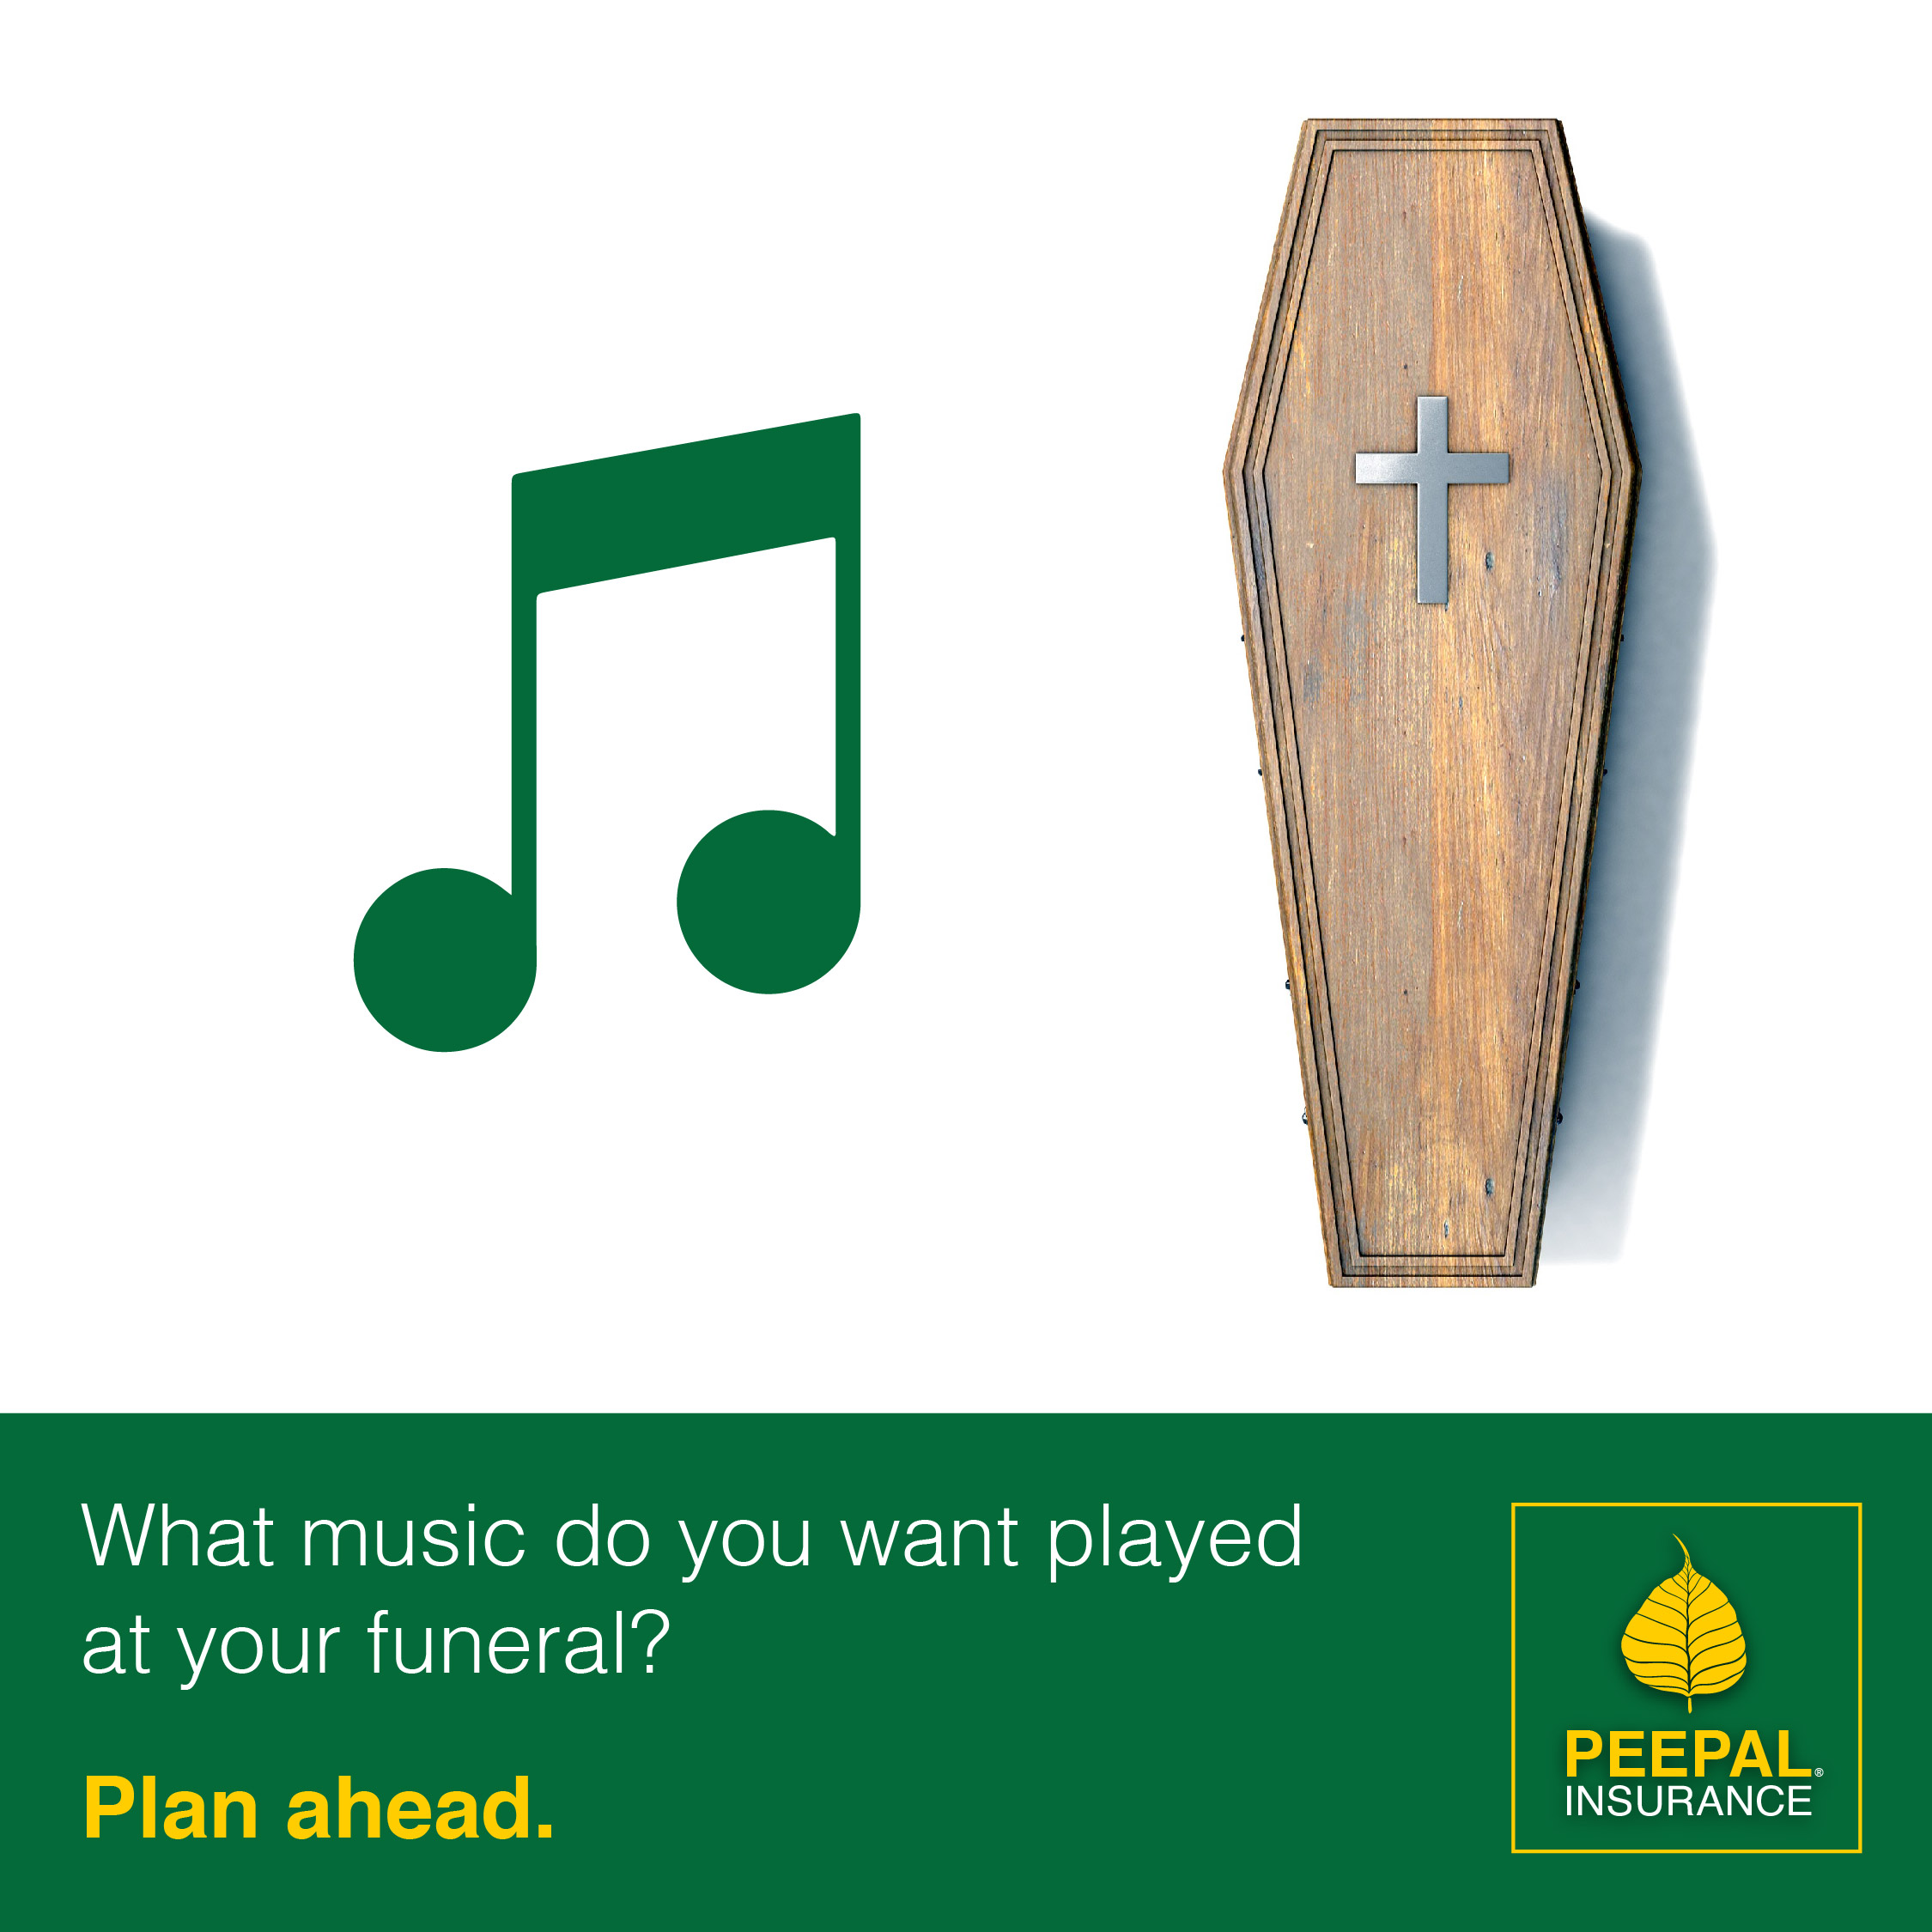 What music do you want played at your funeral?